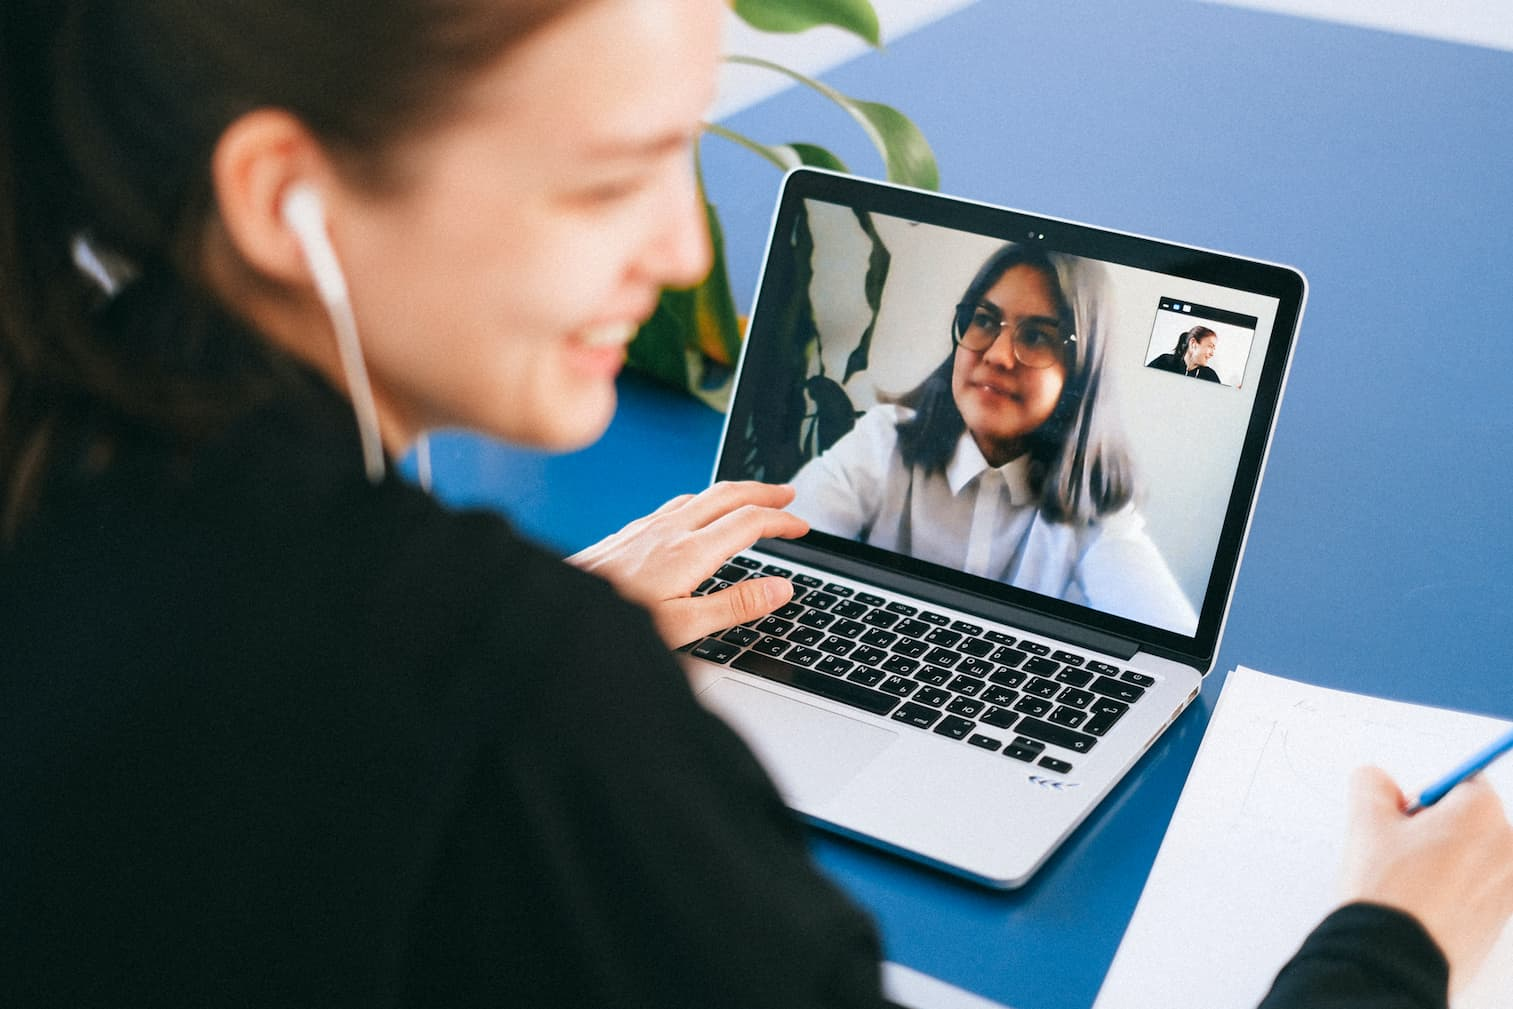 An image of a person on a virtual meeting.